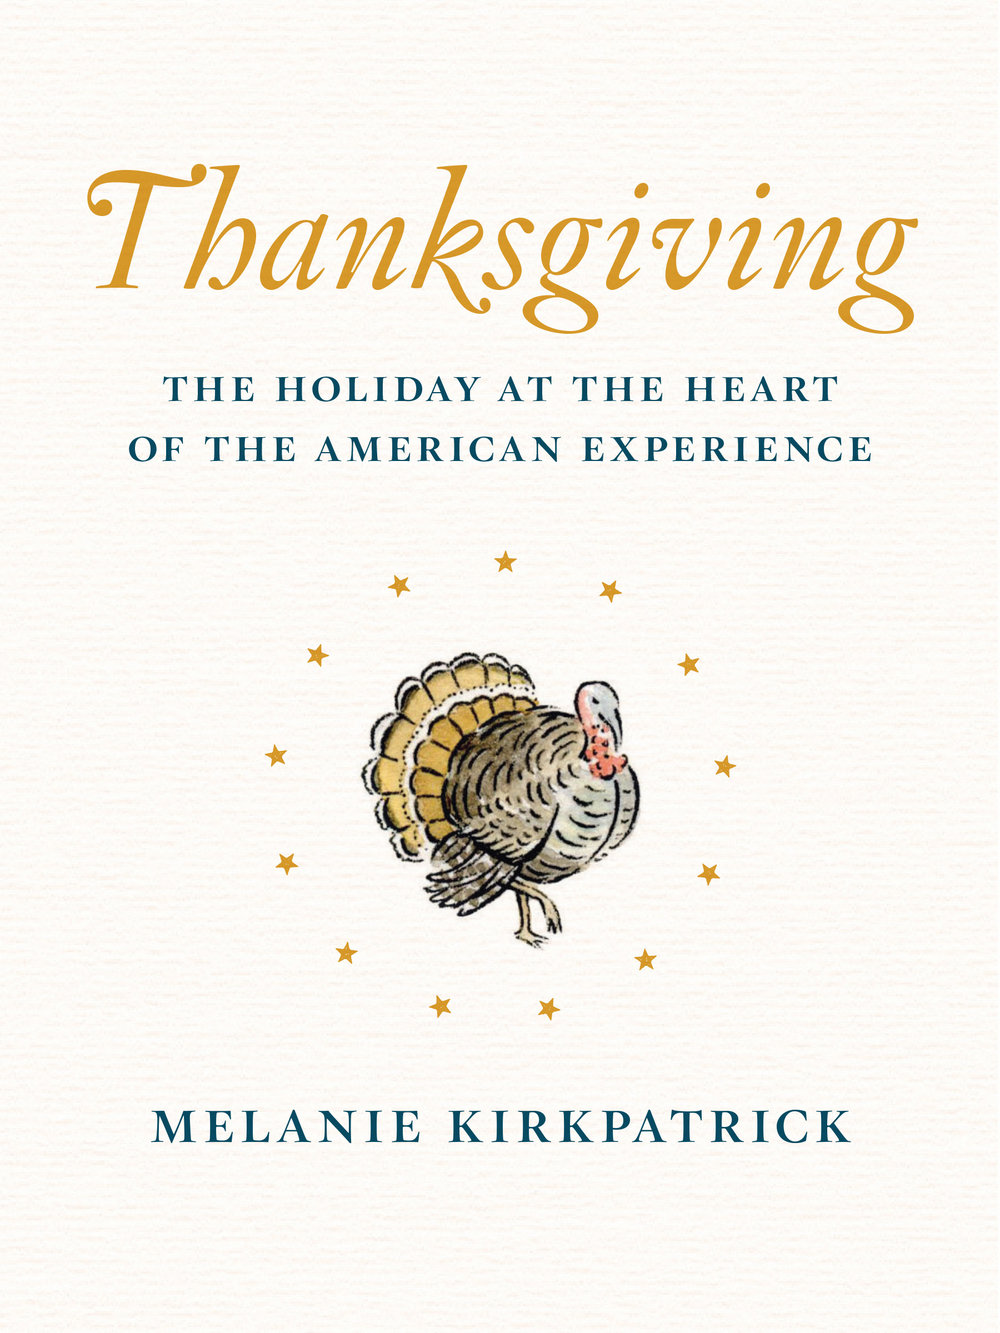 Melanie's  book is available on Amazon  and in stores.